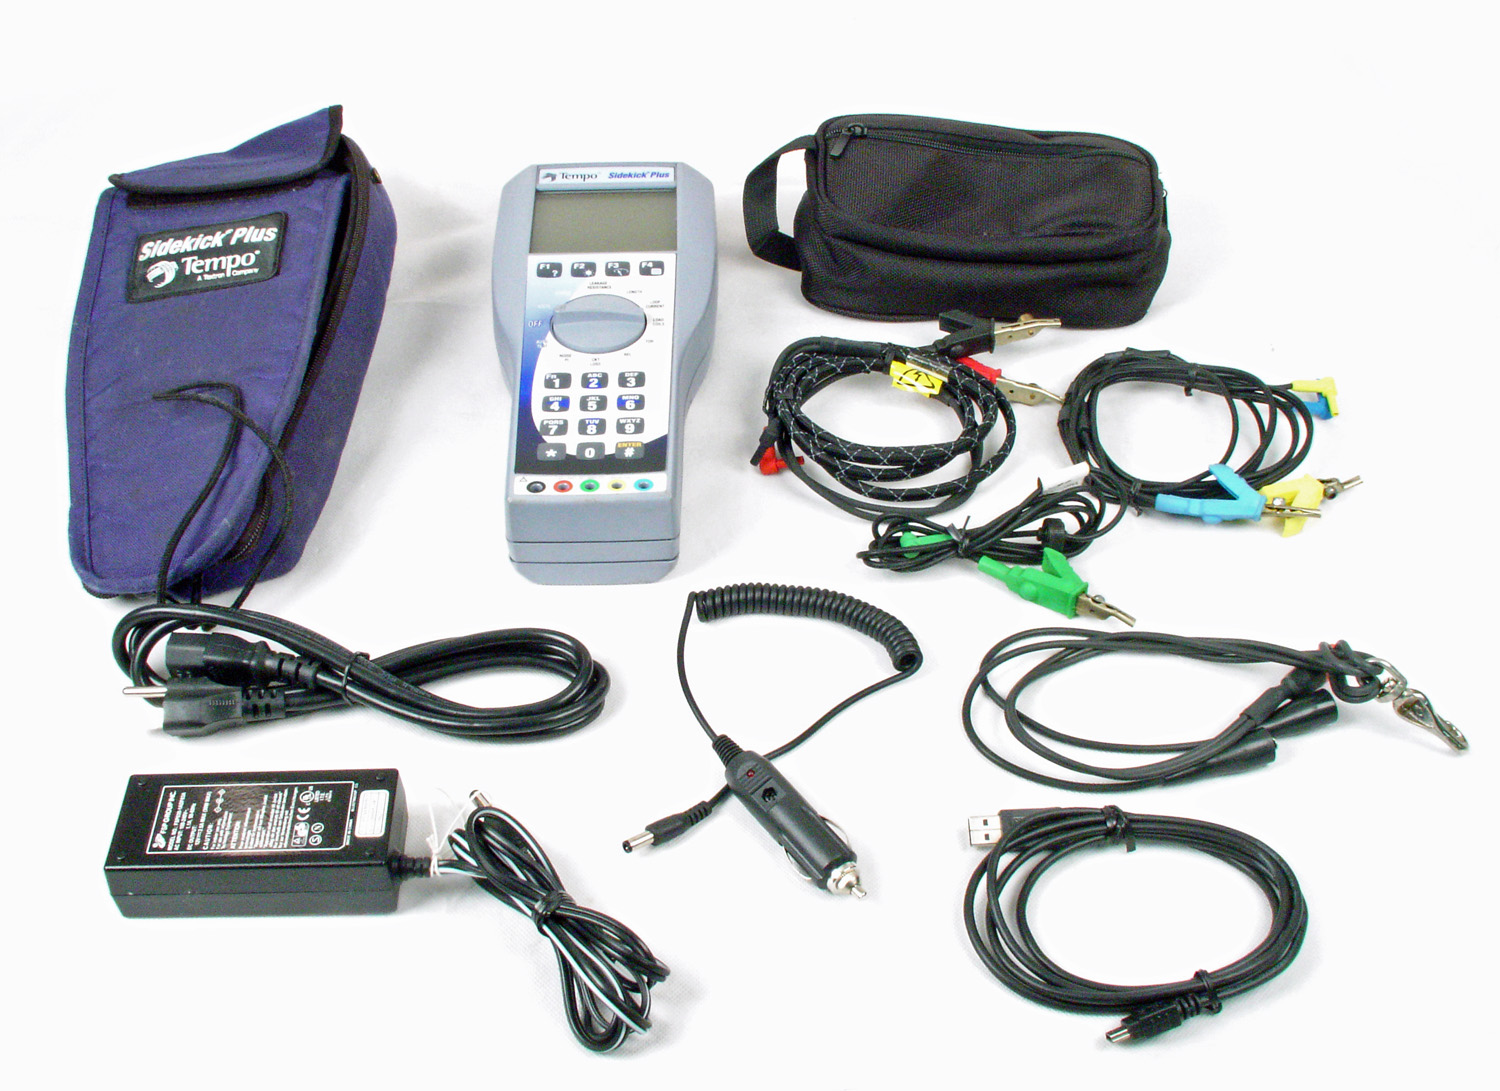 tempo research sidekick plus for sale 595 00 accusource electronics rh accusrc com Tempo Sidekick Gauge Digital Tempo Sidekick Plus